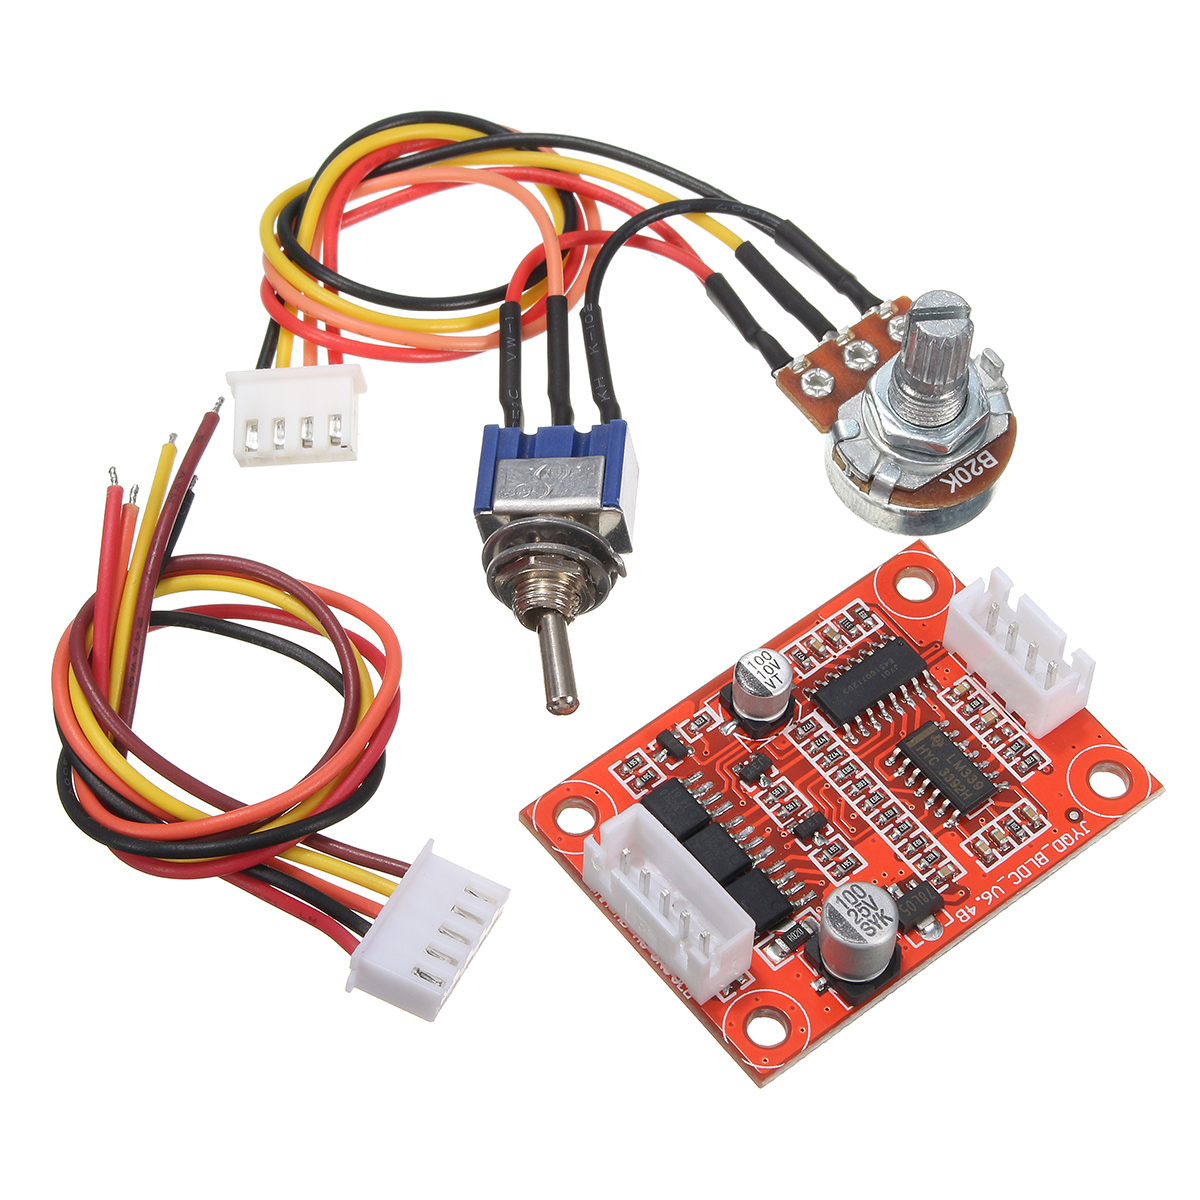 Dc 12v Brushless Motor Driver Controller Board Kit For